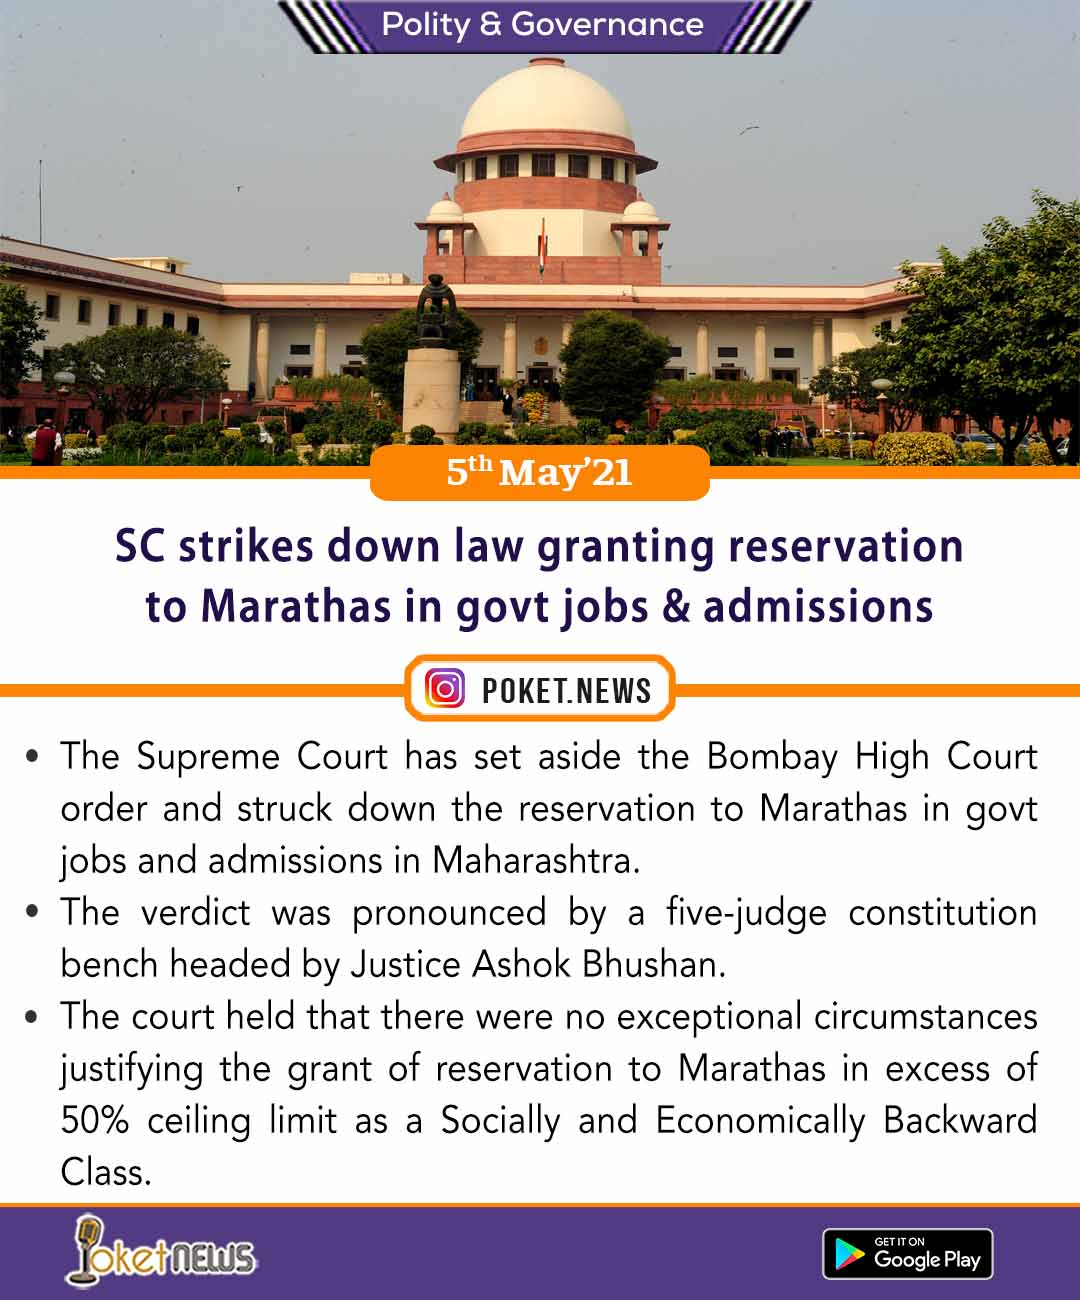 SC strikes down law granting reservation to Marathas in govt jobs & admissions